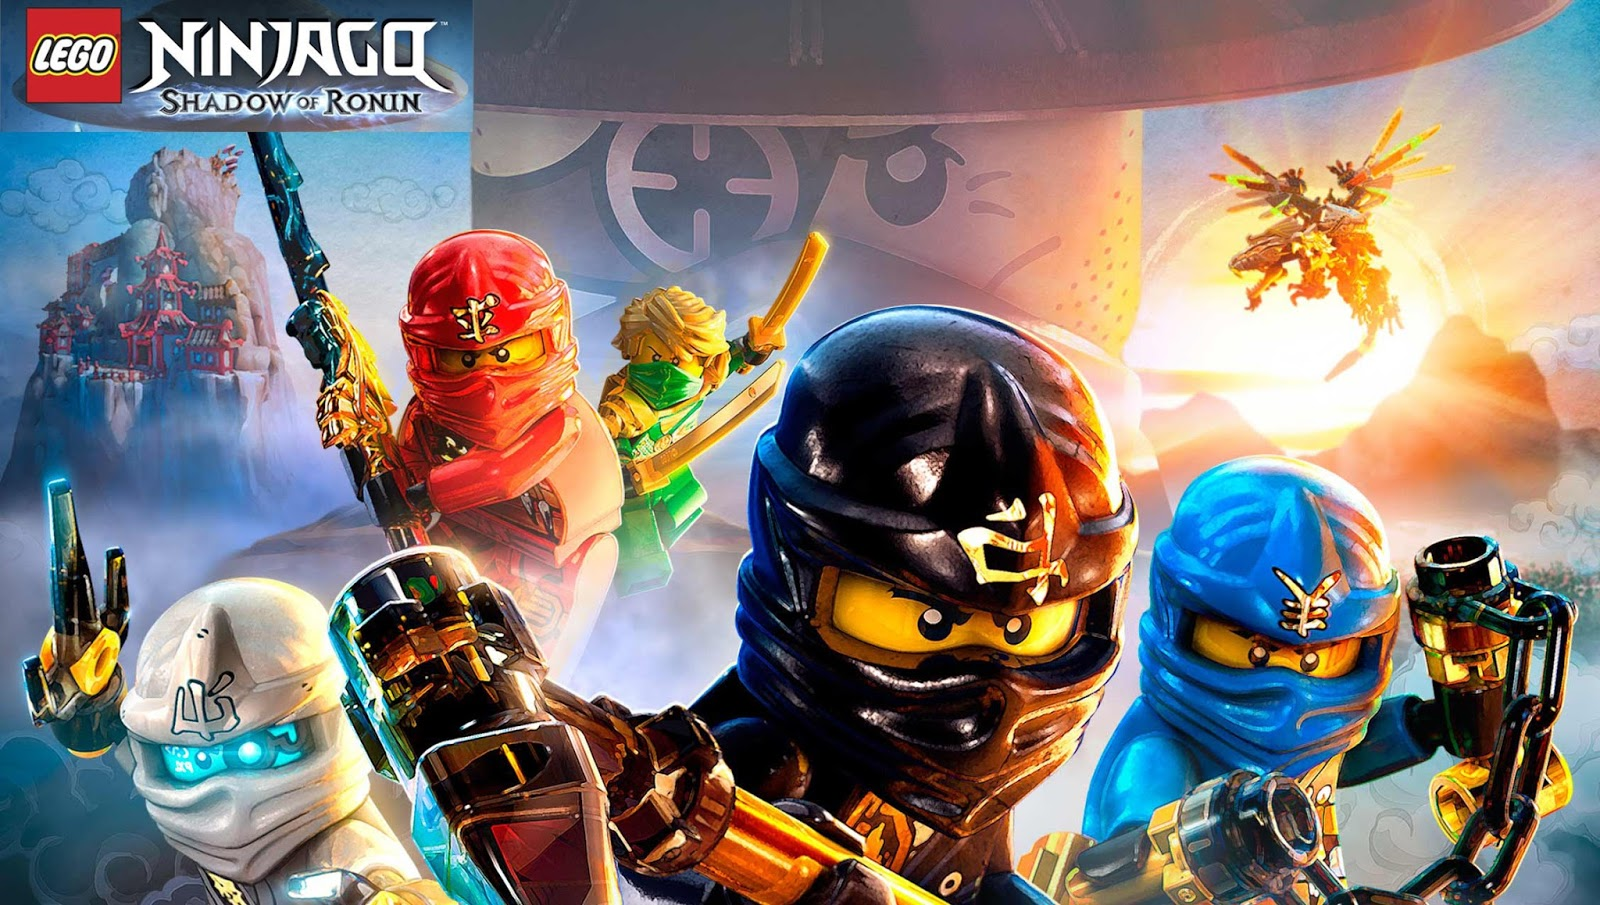 LEGO Ninjago - Shadow of Ronin Gameplay IOS / Android